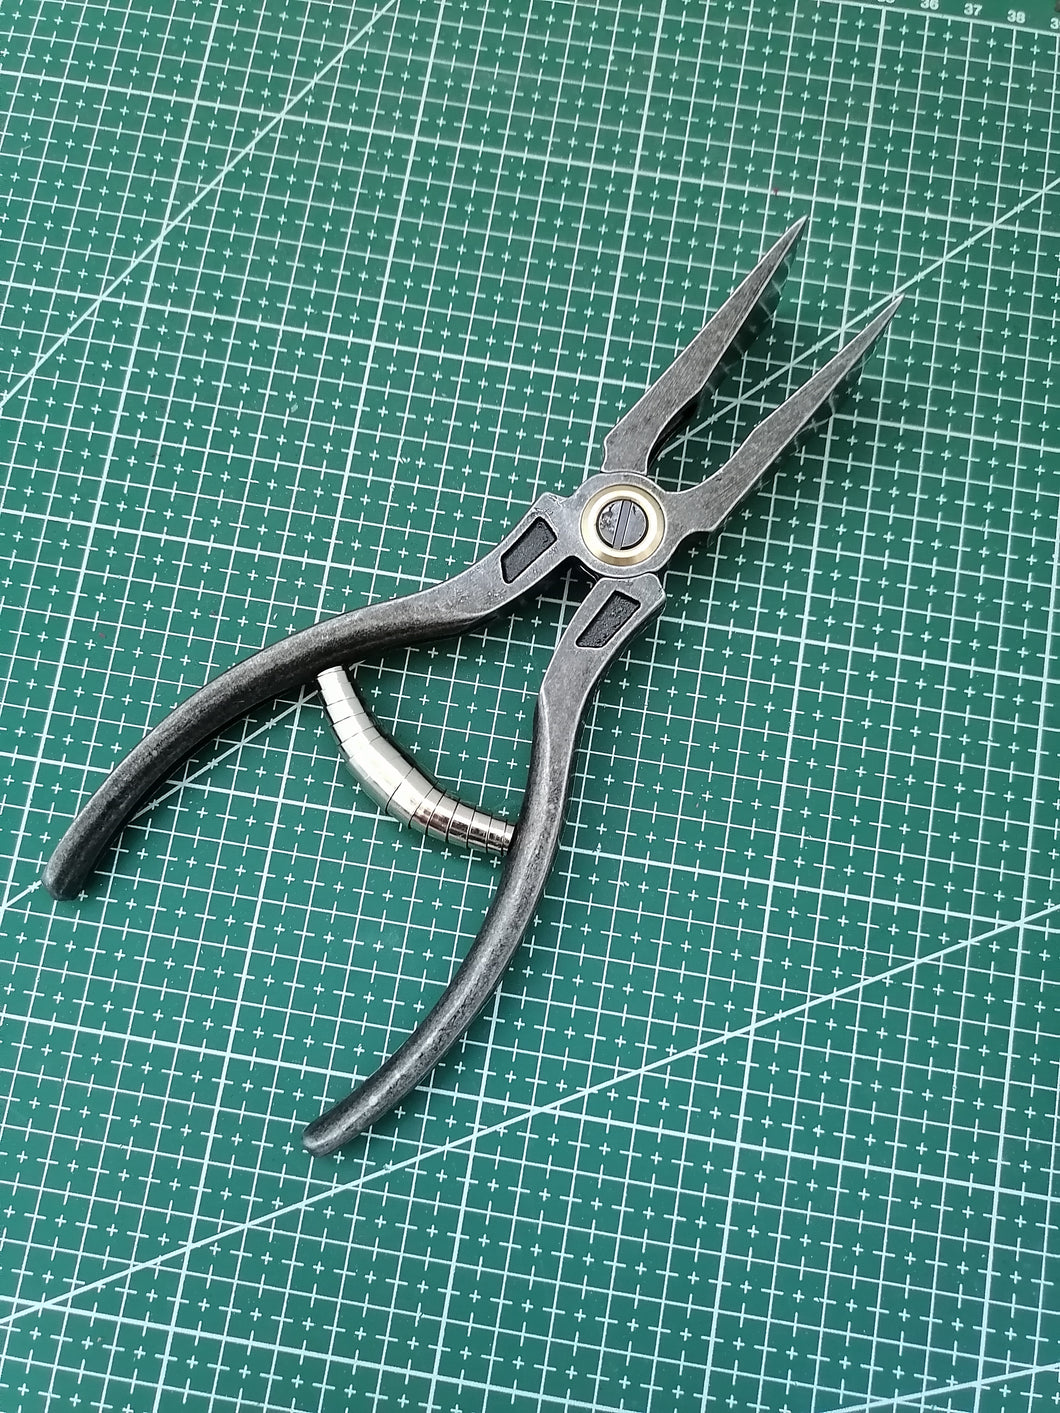 Thead plier, leather edge plier( in stock)